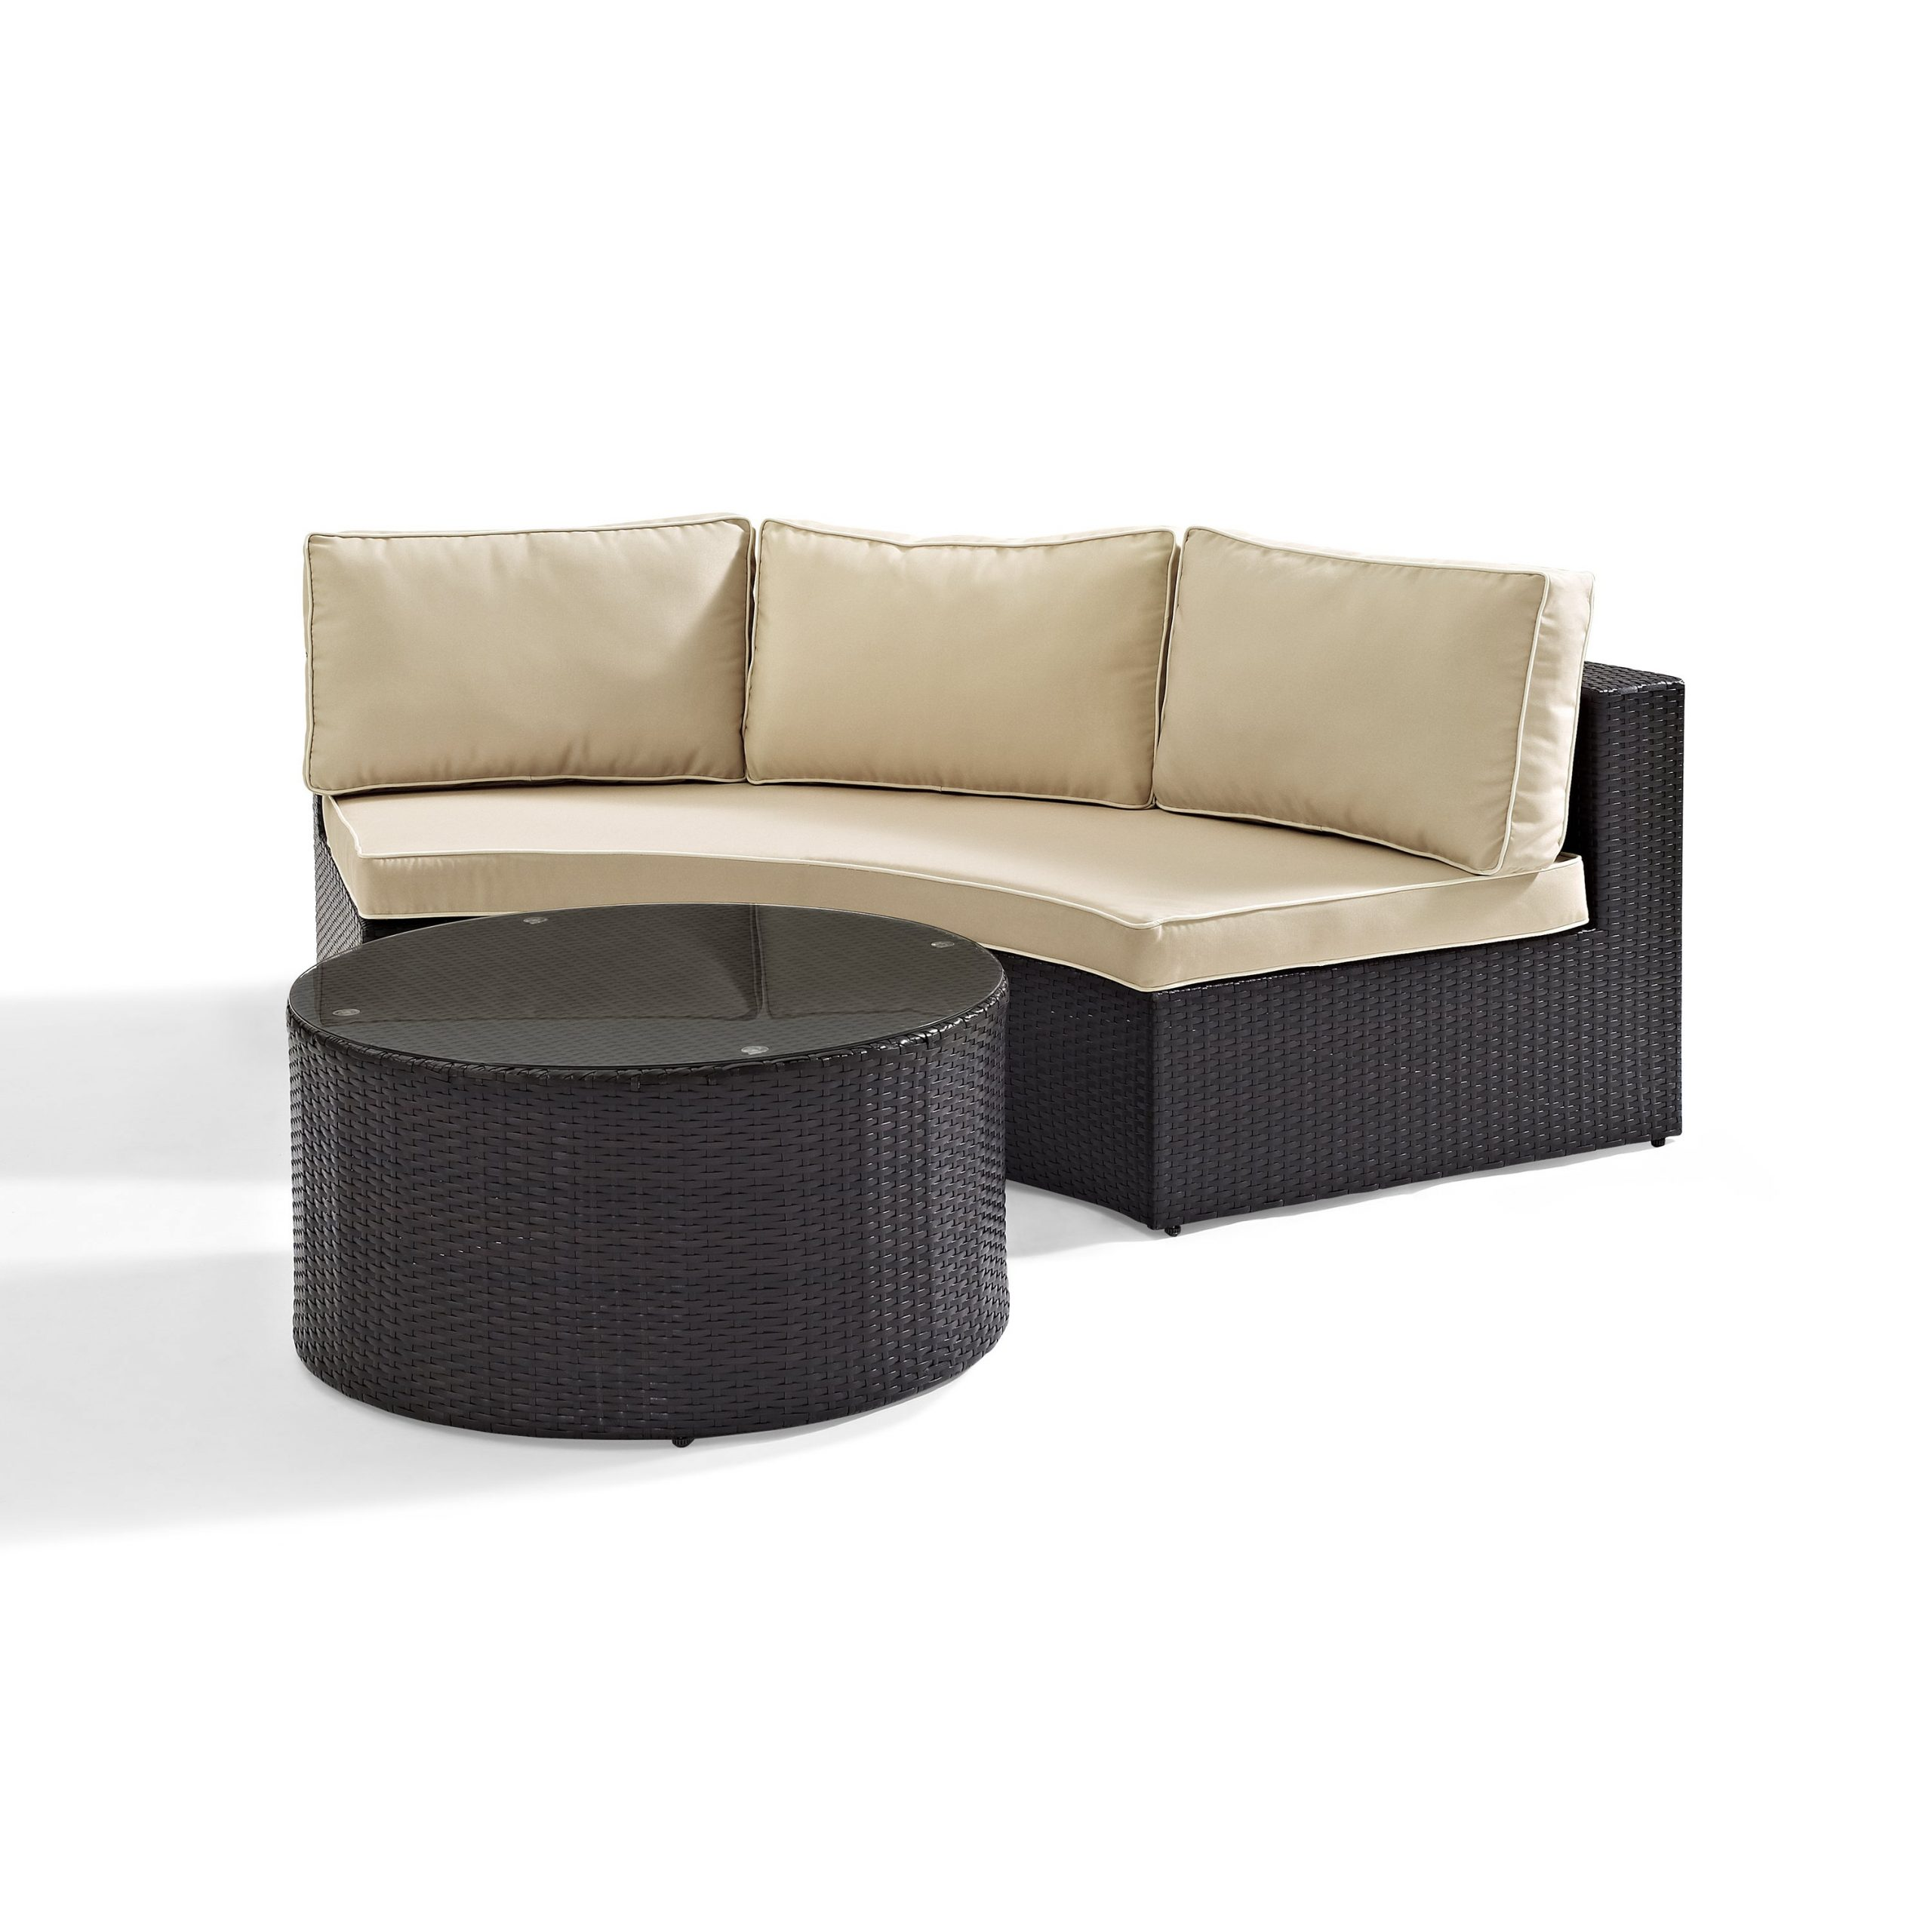 Catalina Outdoor Right Arm Sectional Pieces With Cushions Inside Trendy Catalina 2 Piece Outdoor Wicker Seating Set With Sand Cushions – Round Sectional Sofa With Round Glass Top Coffee Table (View 6 of 25)